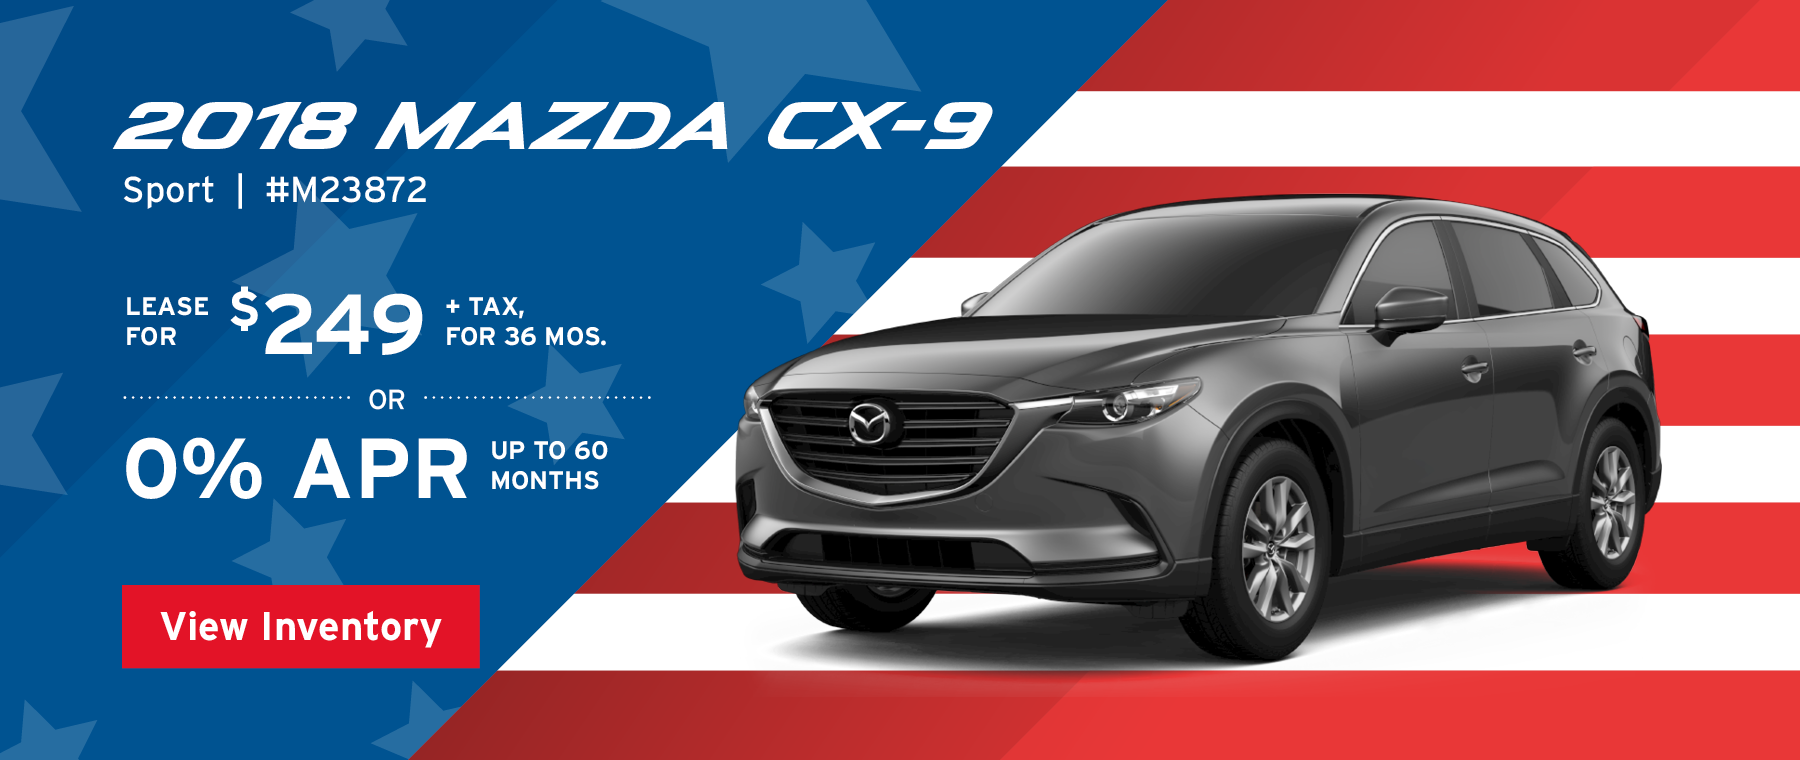 Lease the 2018 Mazda CX-9 Sport for $249, plus tax for 36 months, or 0% APR up to 60 months.